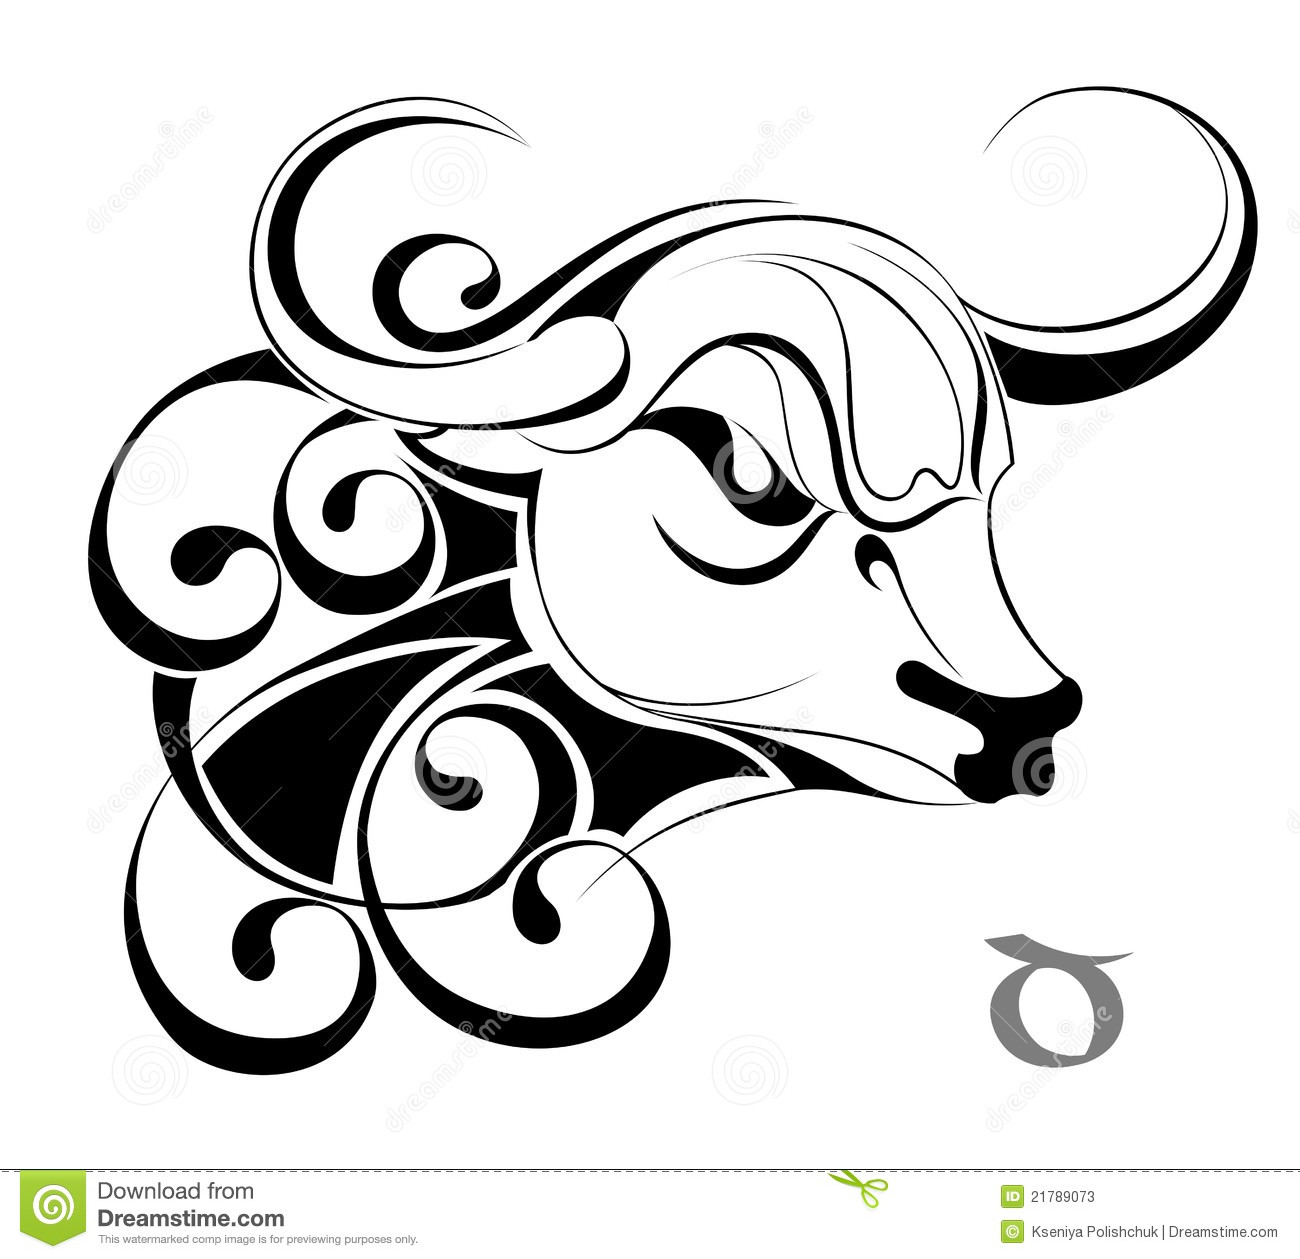 Gemini animal symbol image collections symbol and sign ideas stock vector gemini astrology sign tattoo design in 2017 real stock vector gemini astrology sign tattoo biocorpaavc